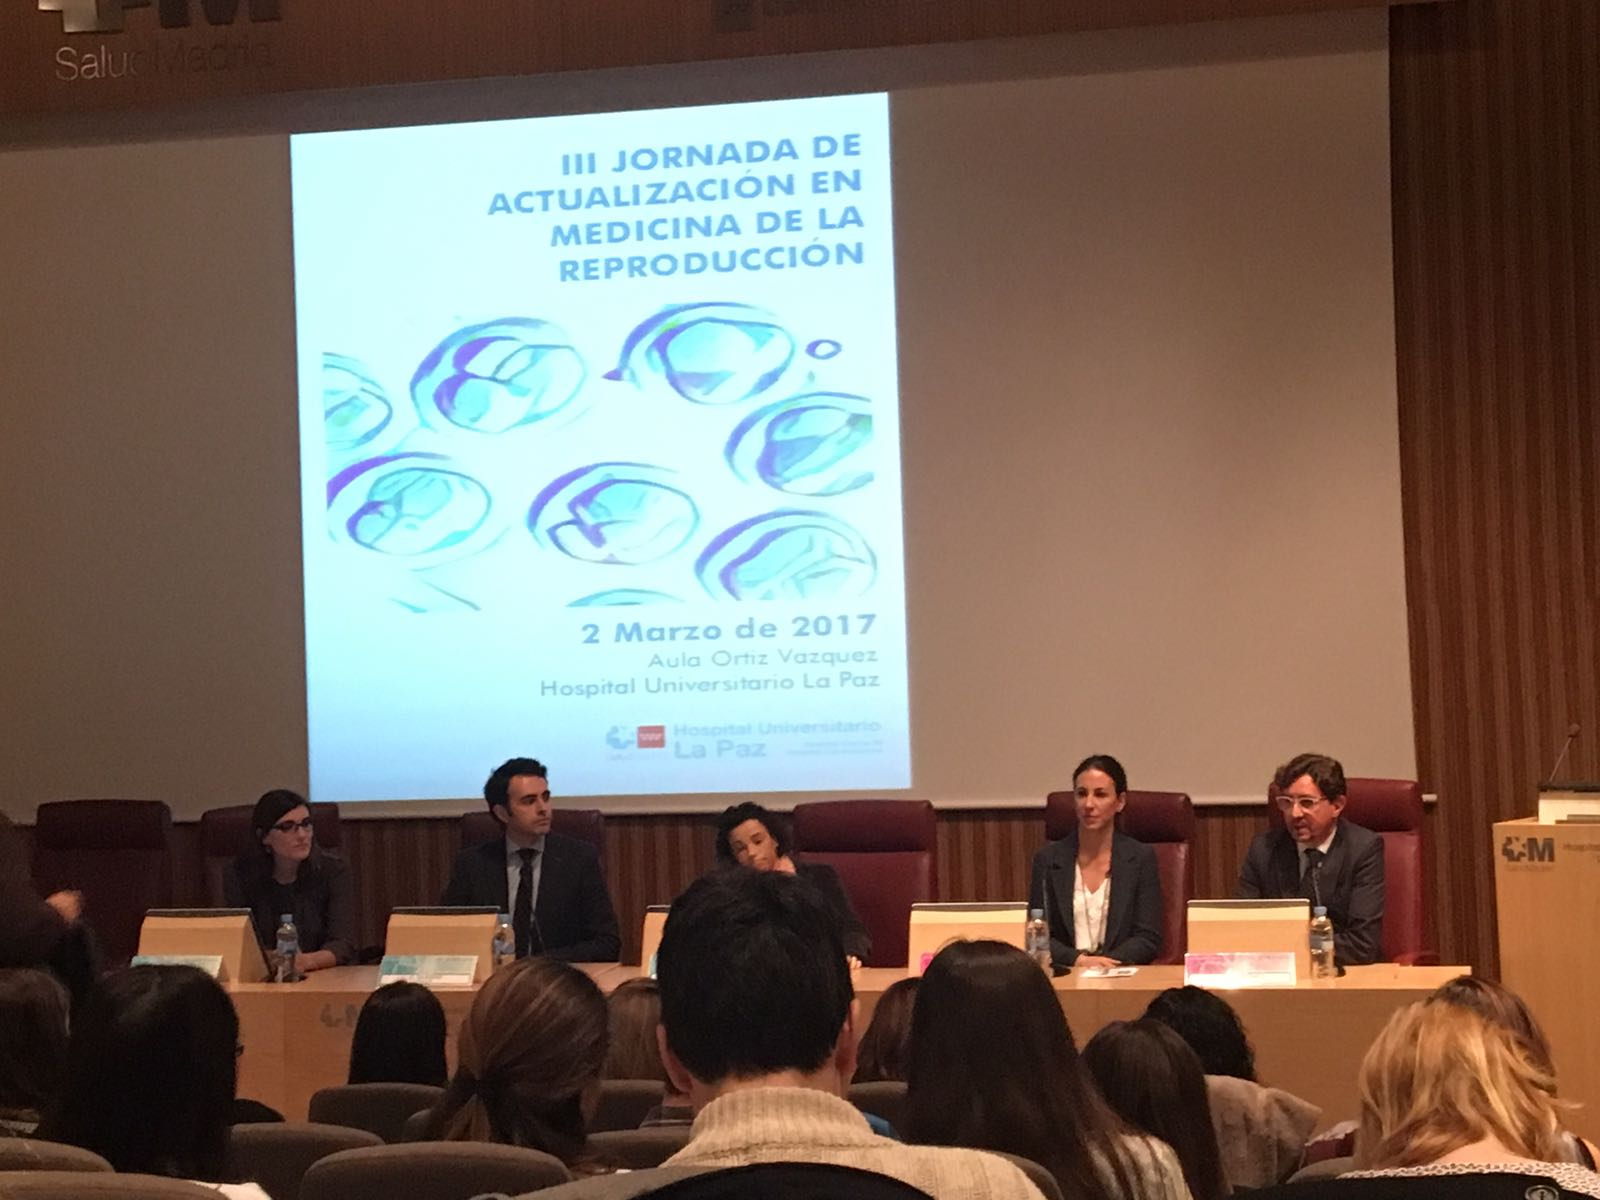 Instituto Bernabeu participation in the 3rd Edition of the Reproductive Medicine Event organised by La Paz Hospital in Madrid